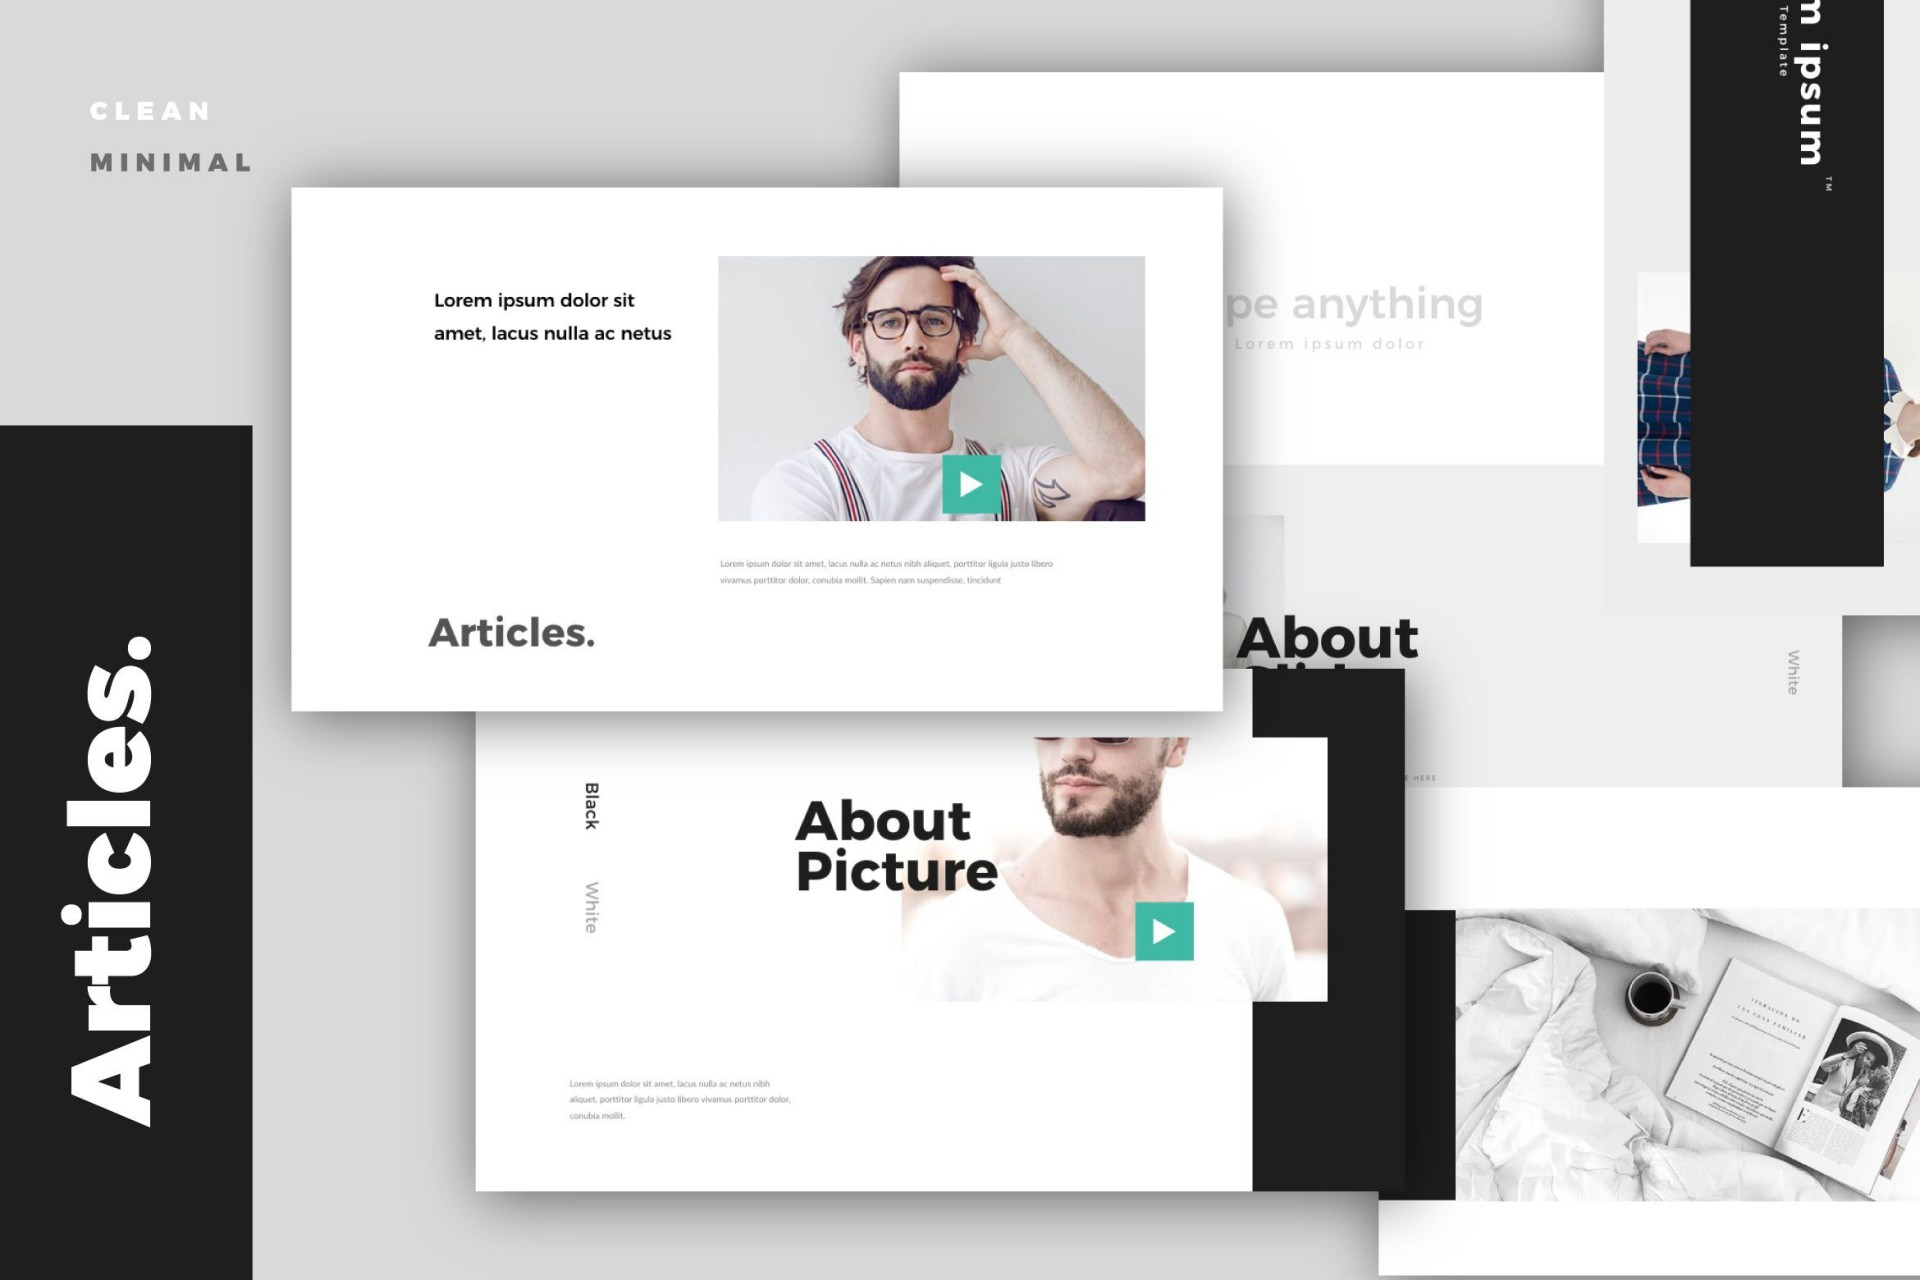 001 Unbelievable Powerpoint Template For Mac High Definition  Free Macbook Air Microsoft Download Theme1920